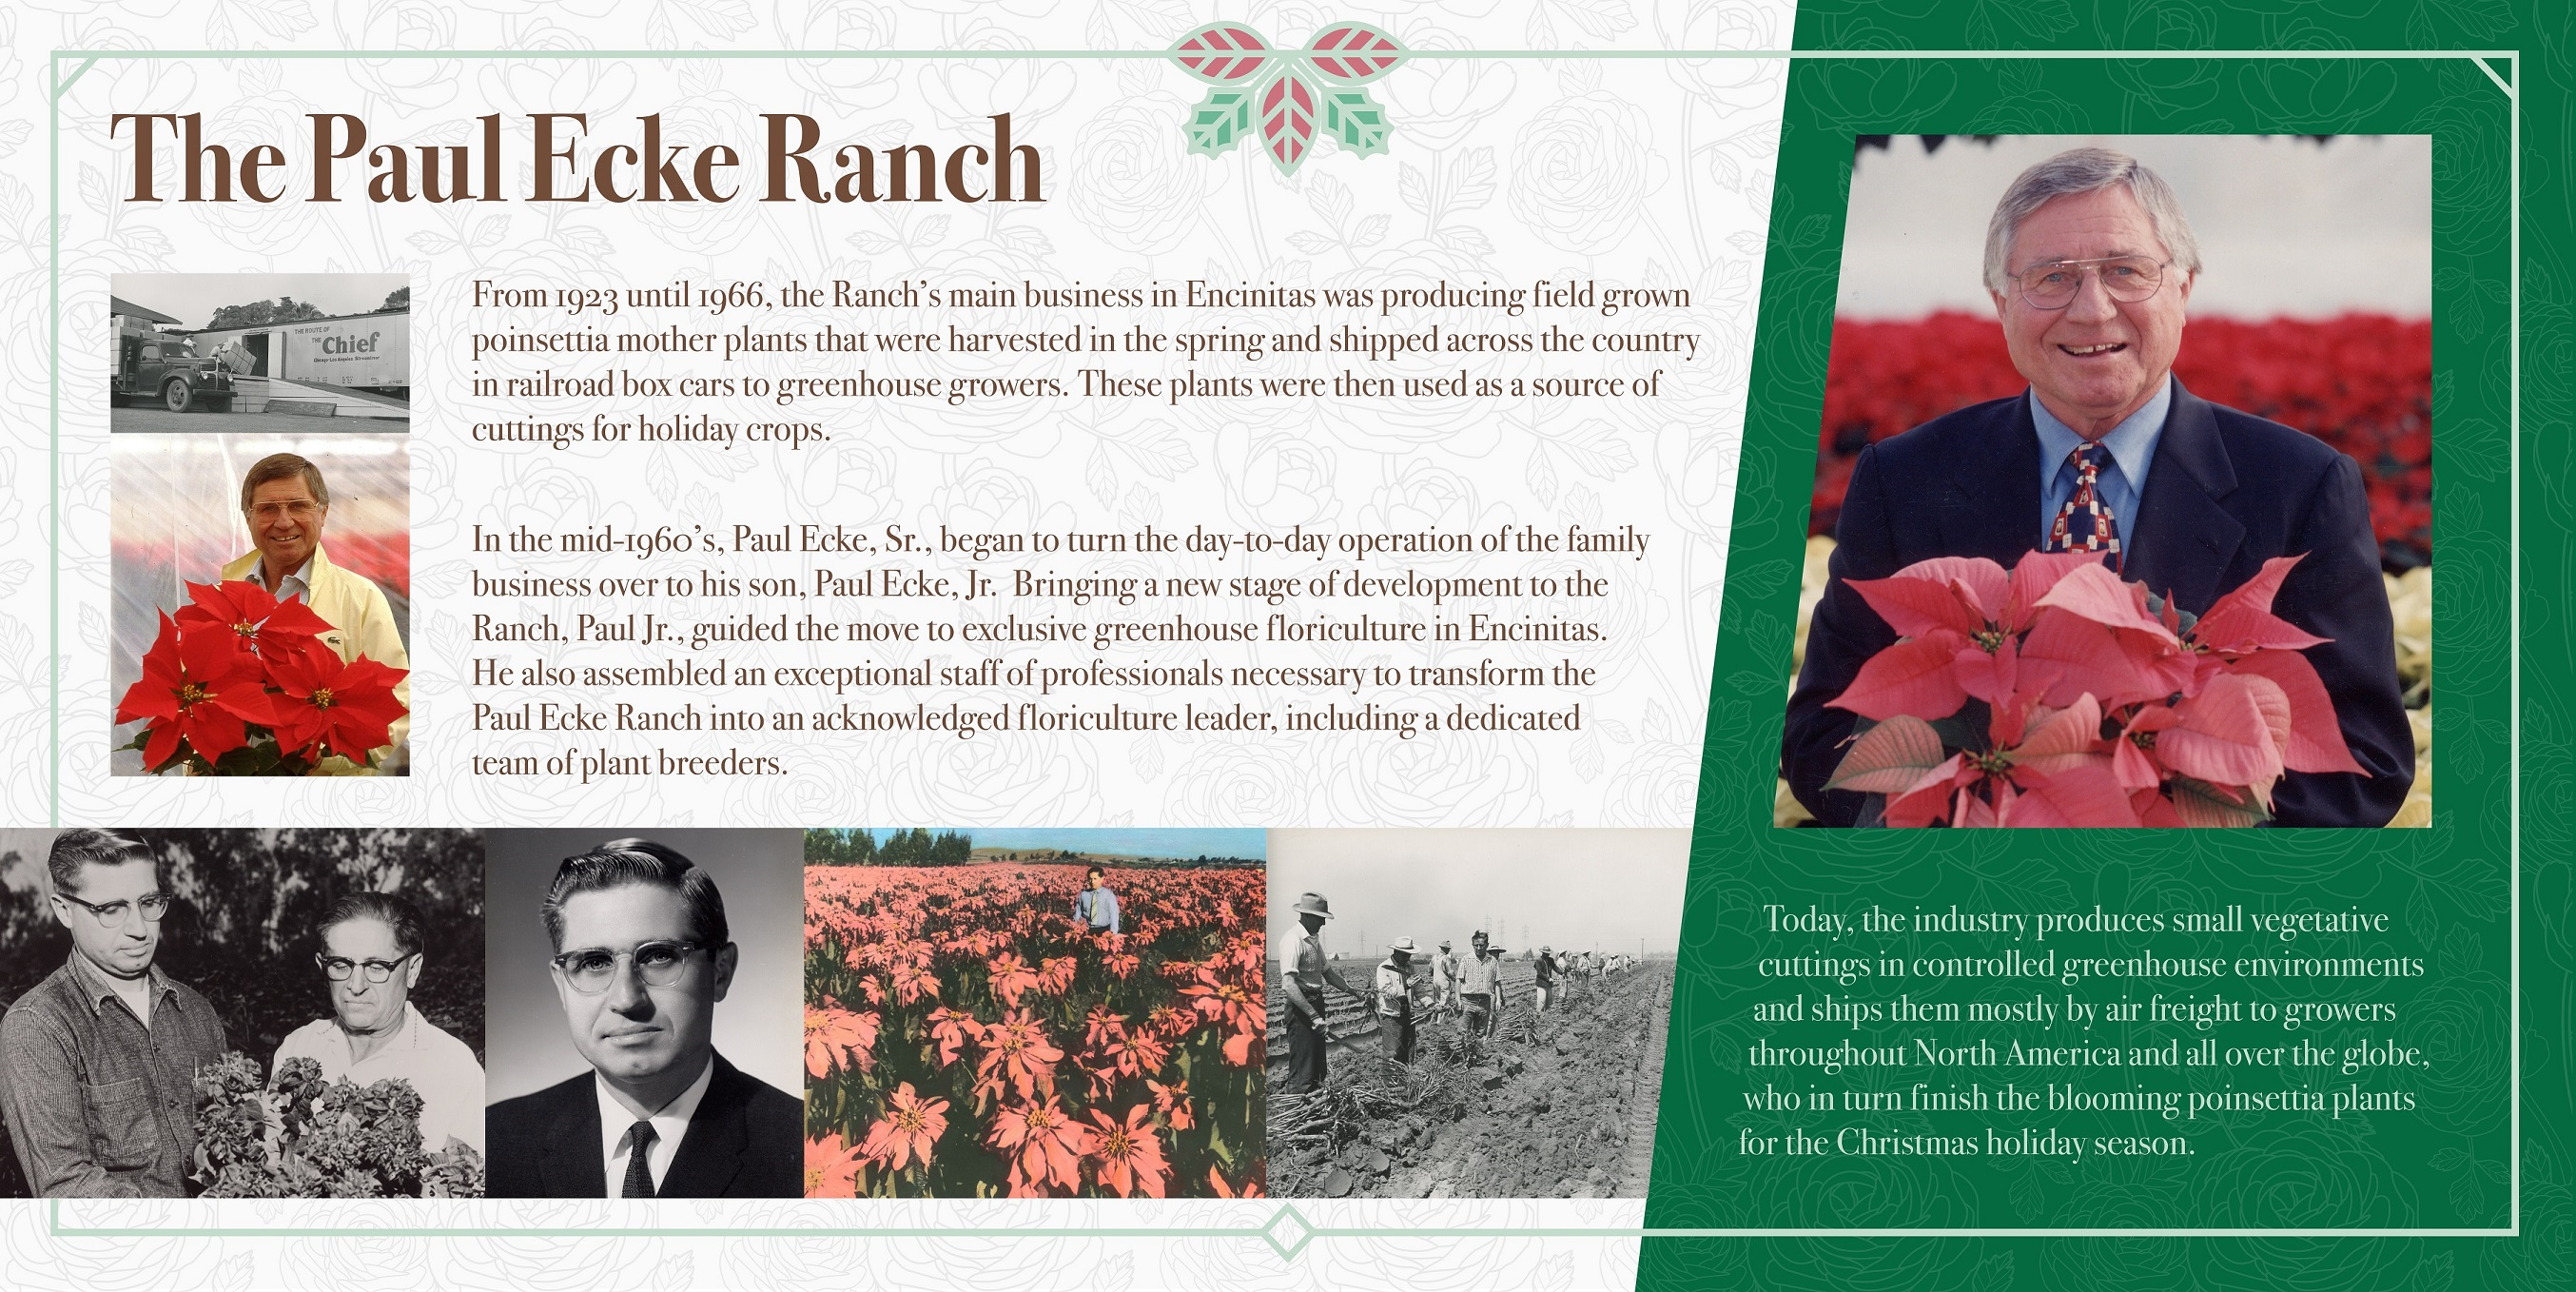 The Paul Ecke Ranch